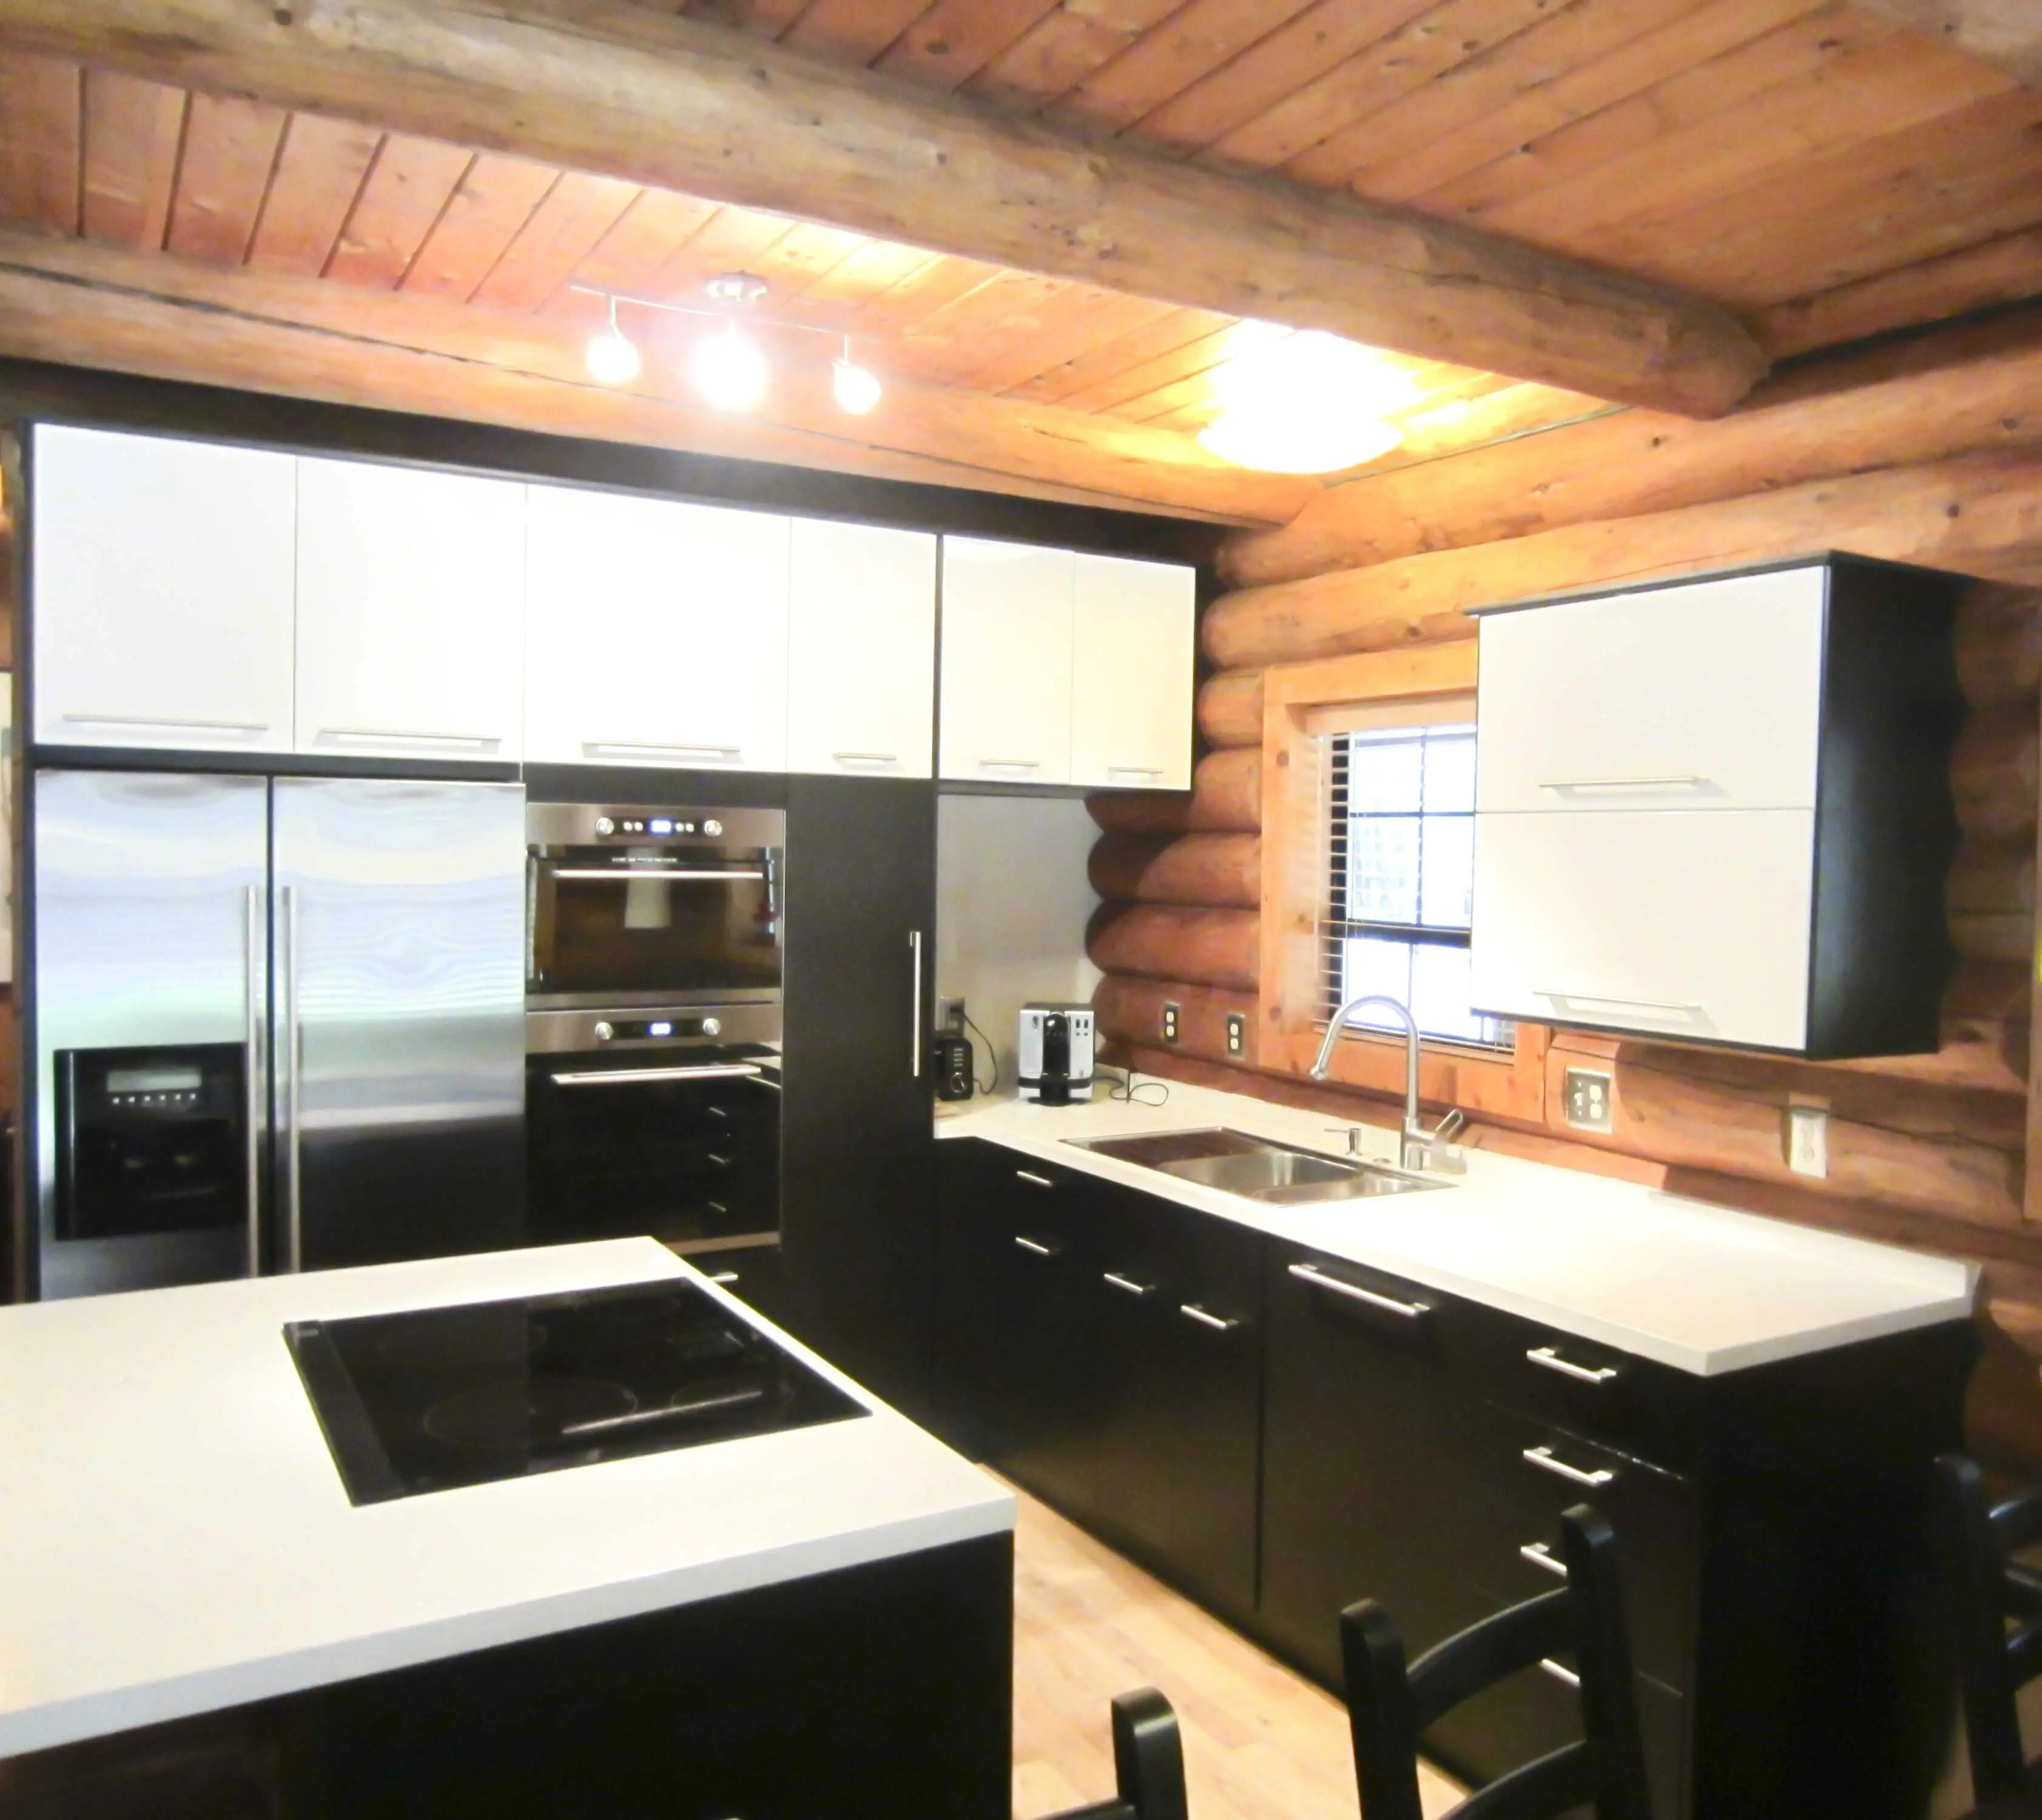 installing ikea cabinets in a log home ikea kitchen remodel This